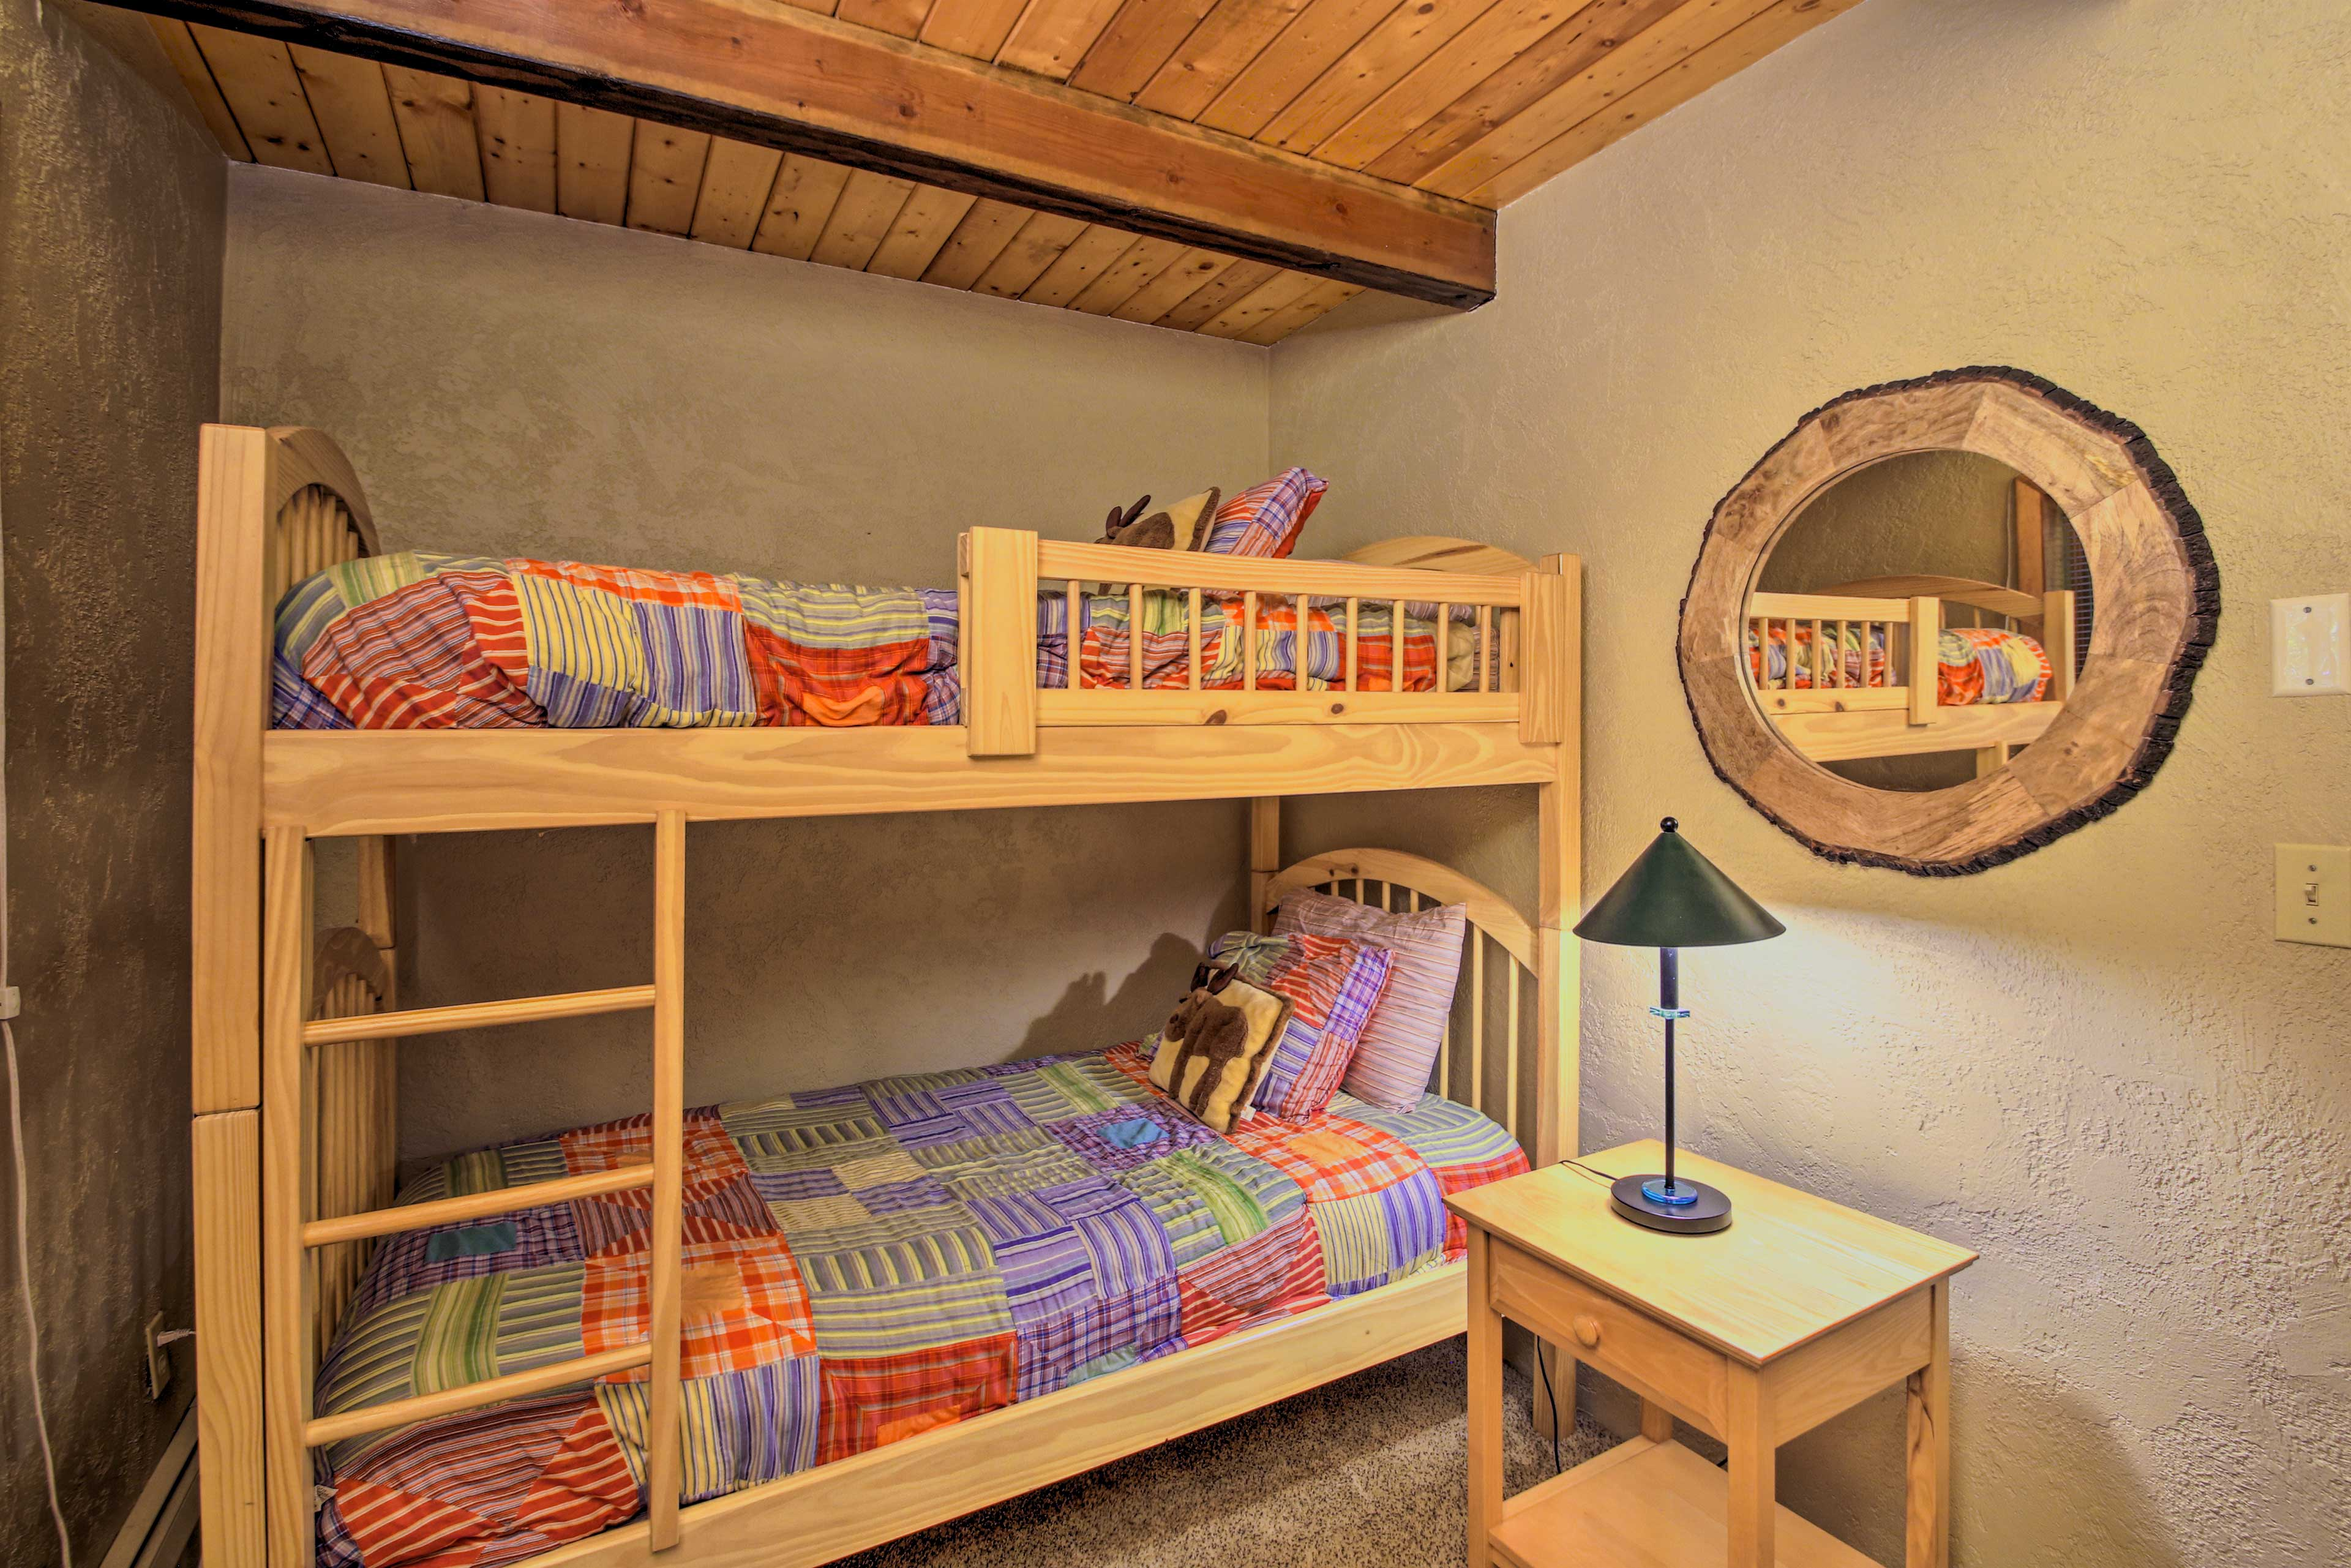 The kids will like the twin bunk bed in this room.